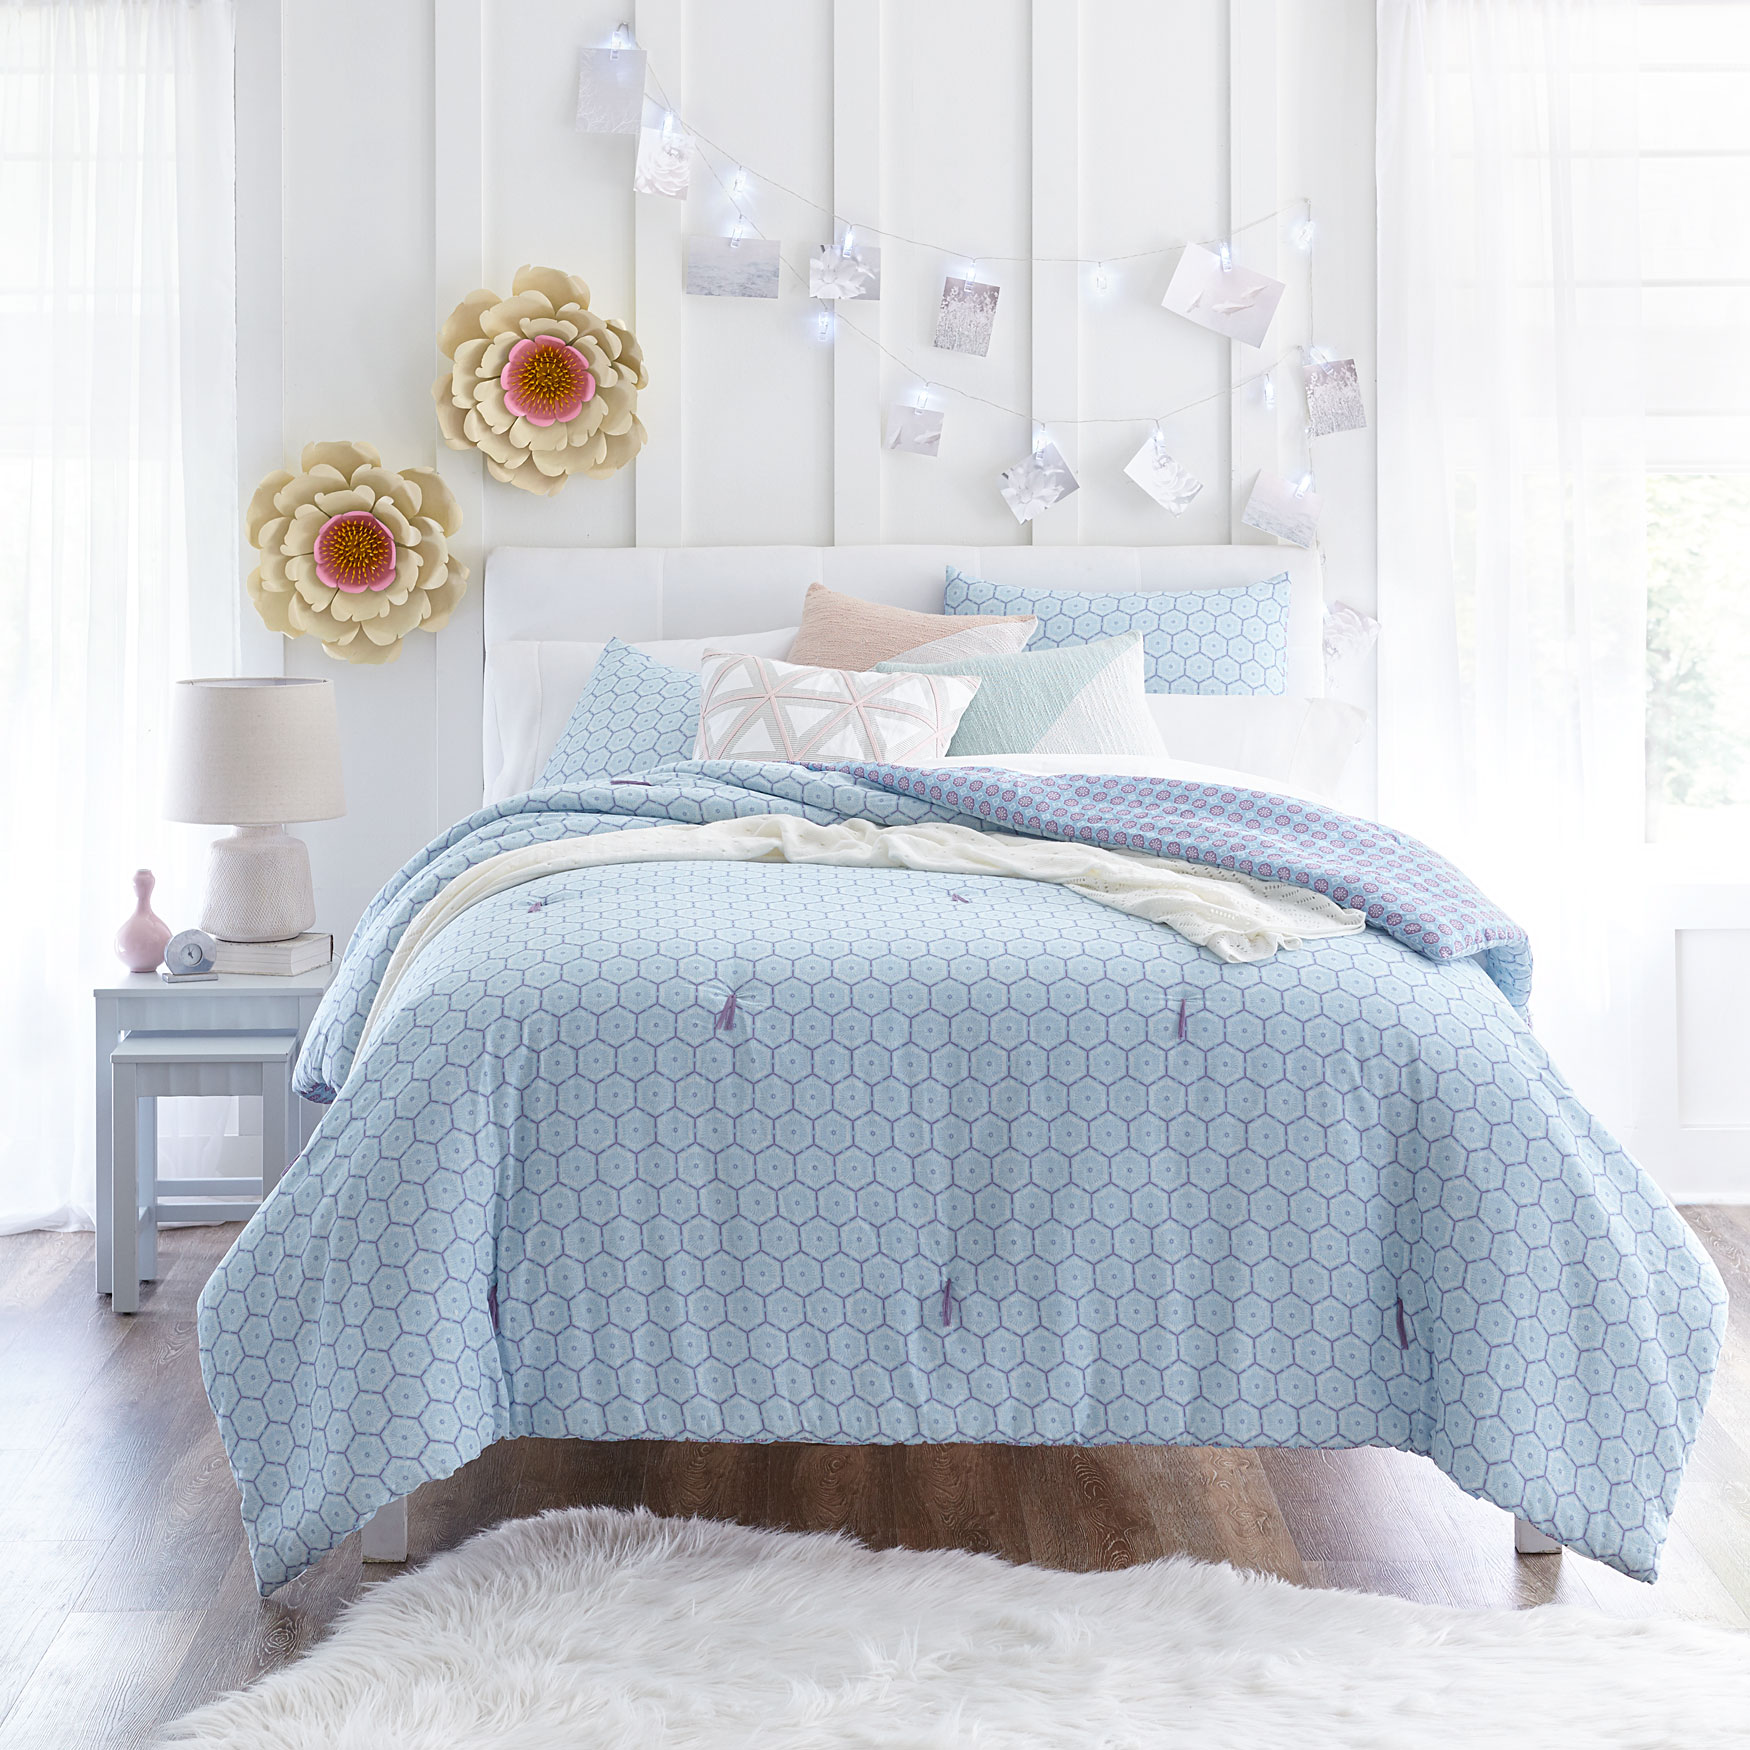 BH Studio® Polly French Knot Comforter,